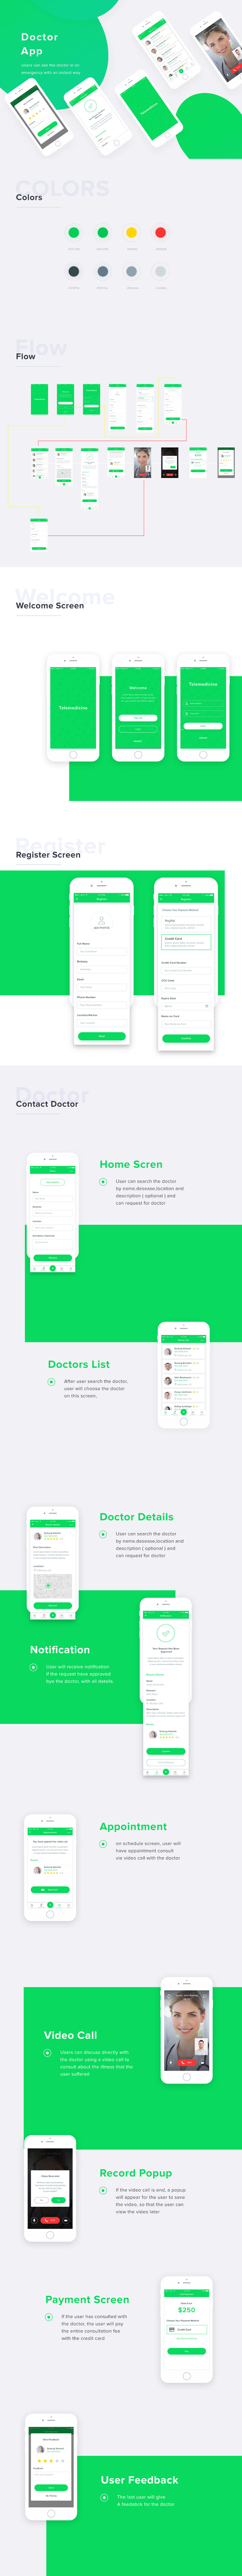 Free Doctor Mobile App PSD